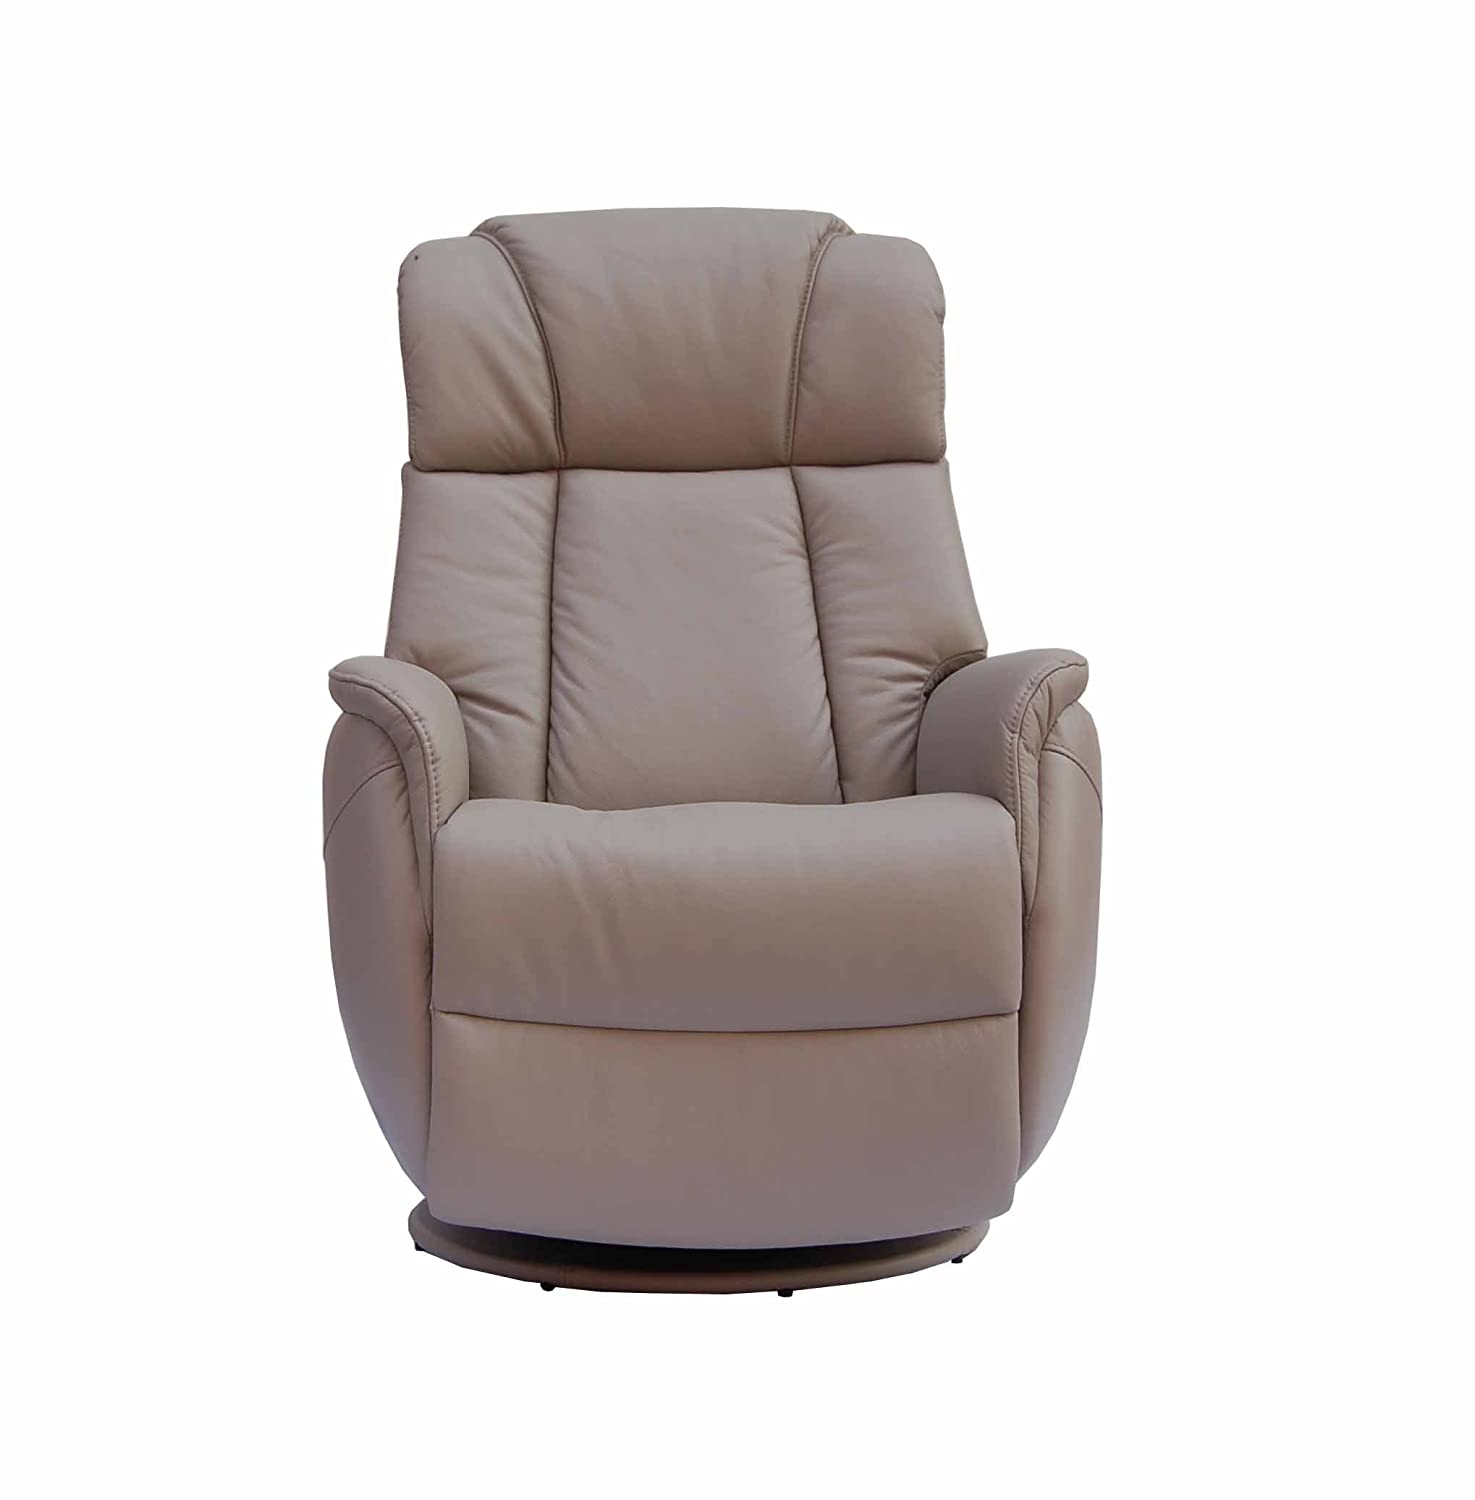 The Sorrento Real Leather Swivel Rocker Recliner Pebble Amazon